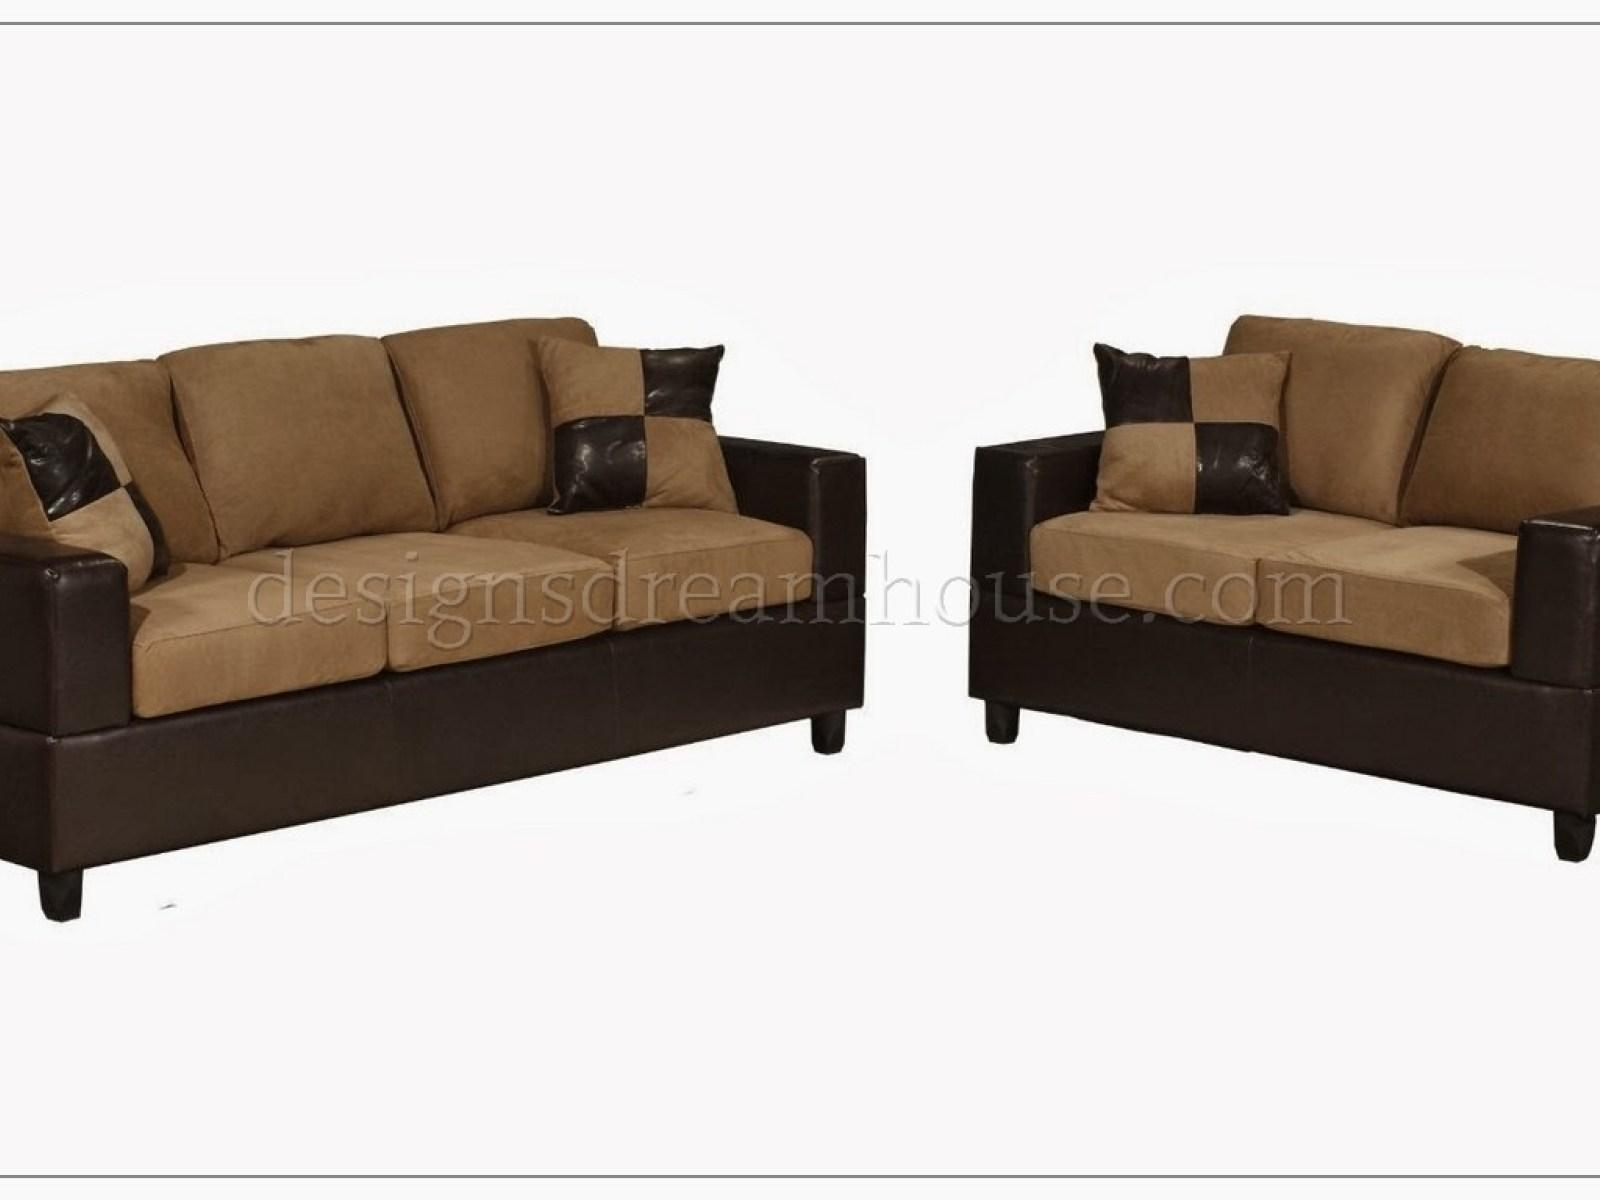 ▻ Sofa : 3 Deluxe Small Modern Sectional Sofa Modern Sofa Inside Small Modern Sofas (View 19 of 20)